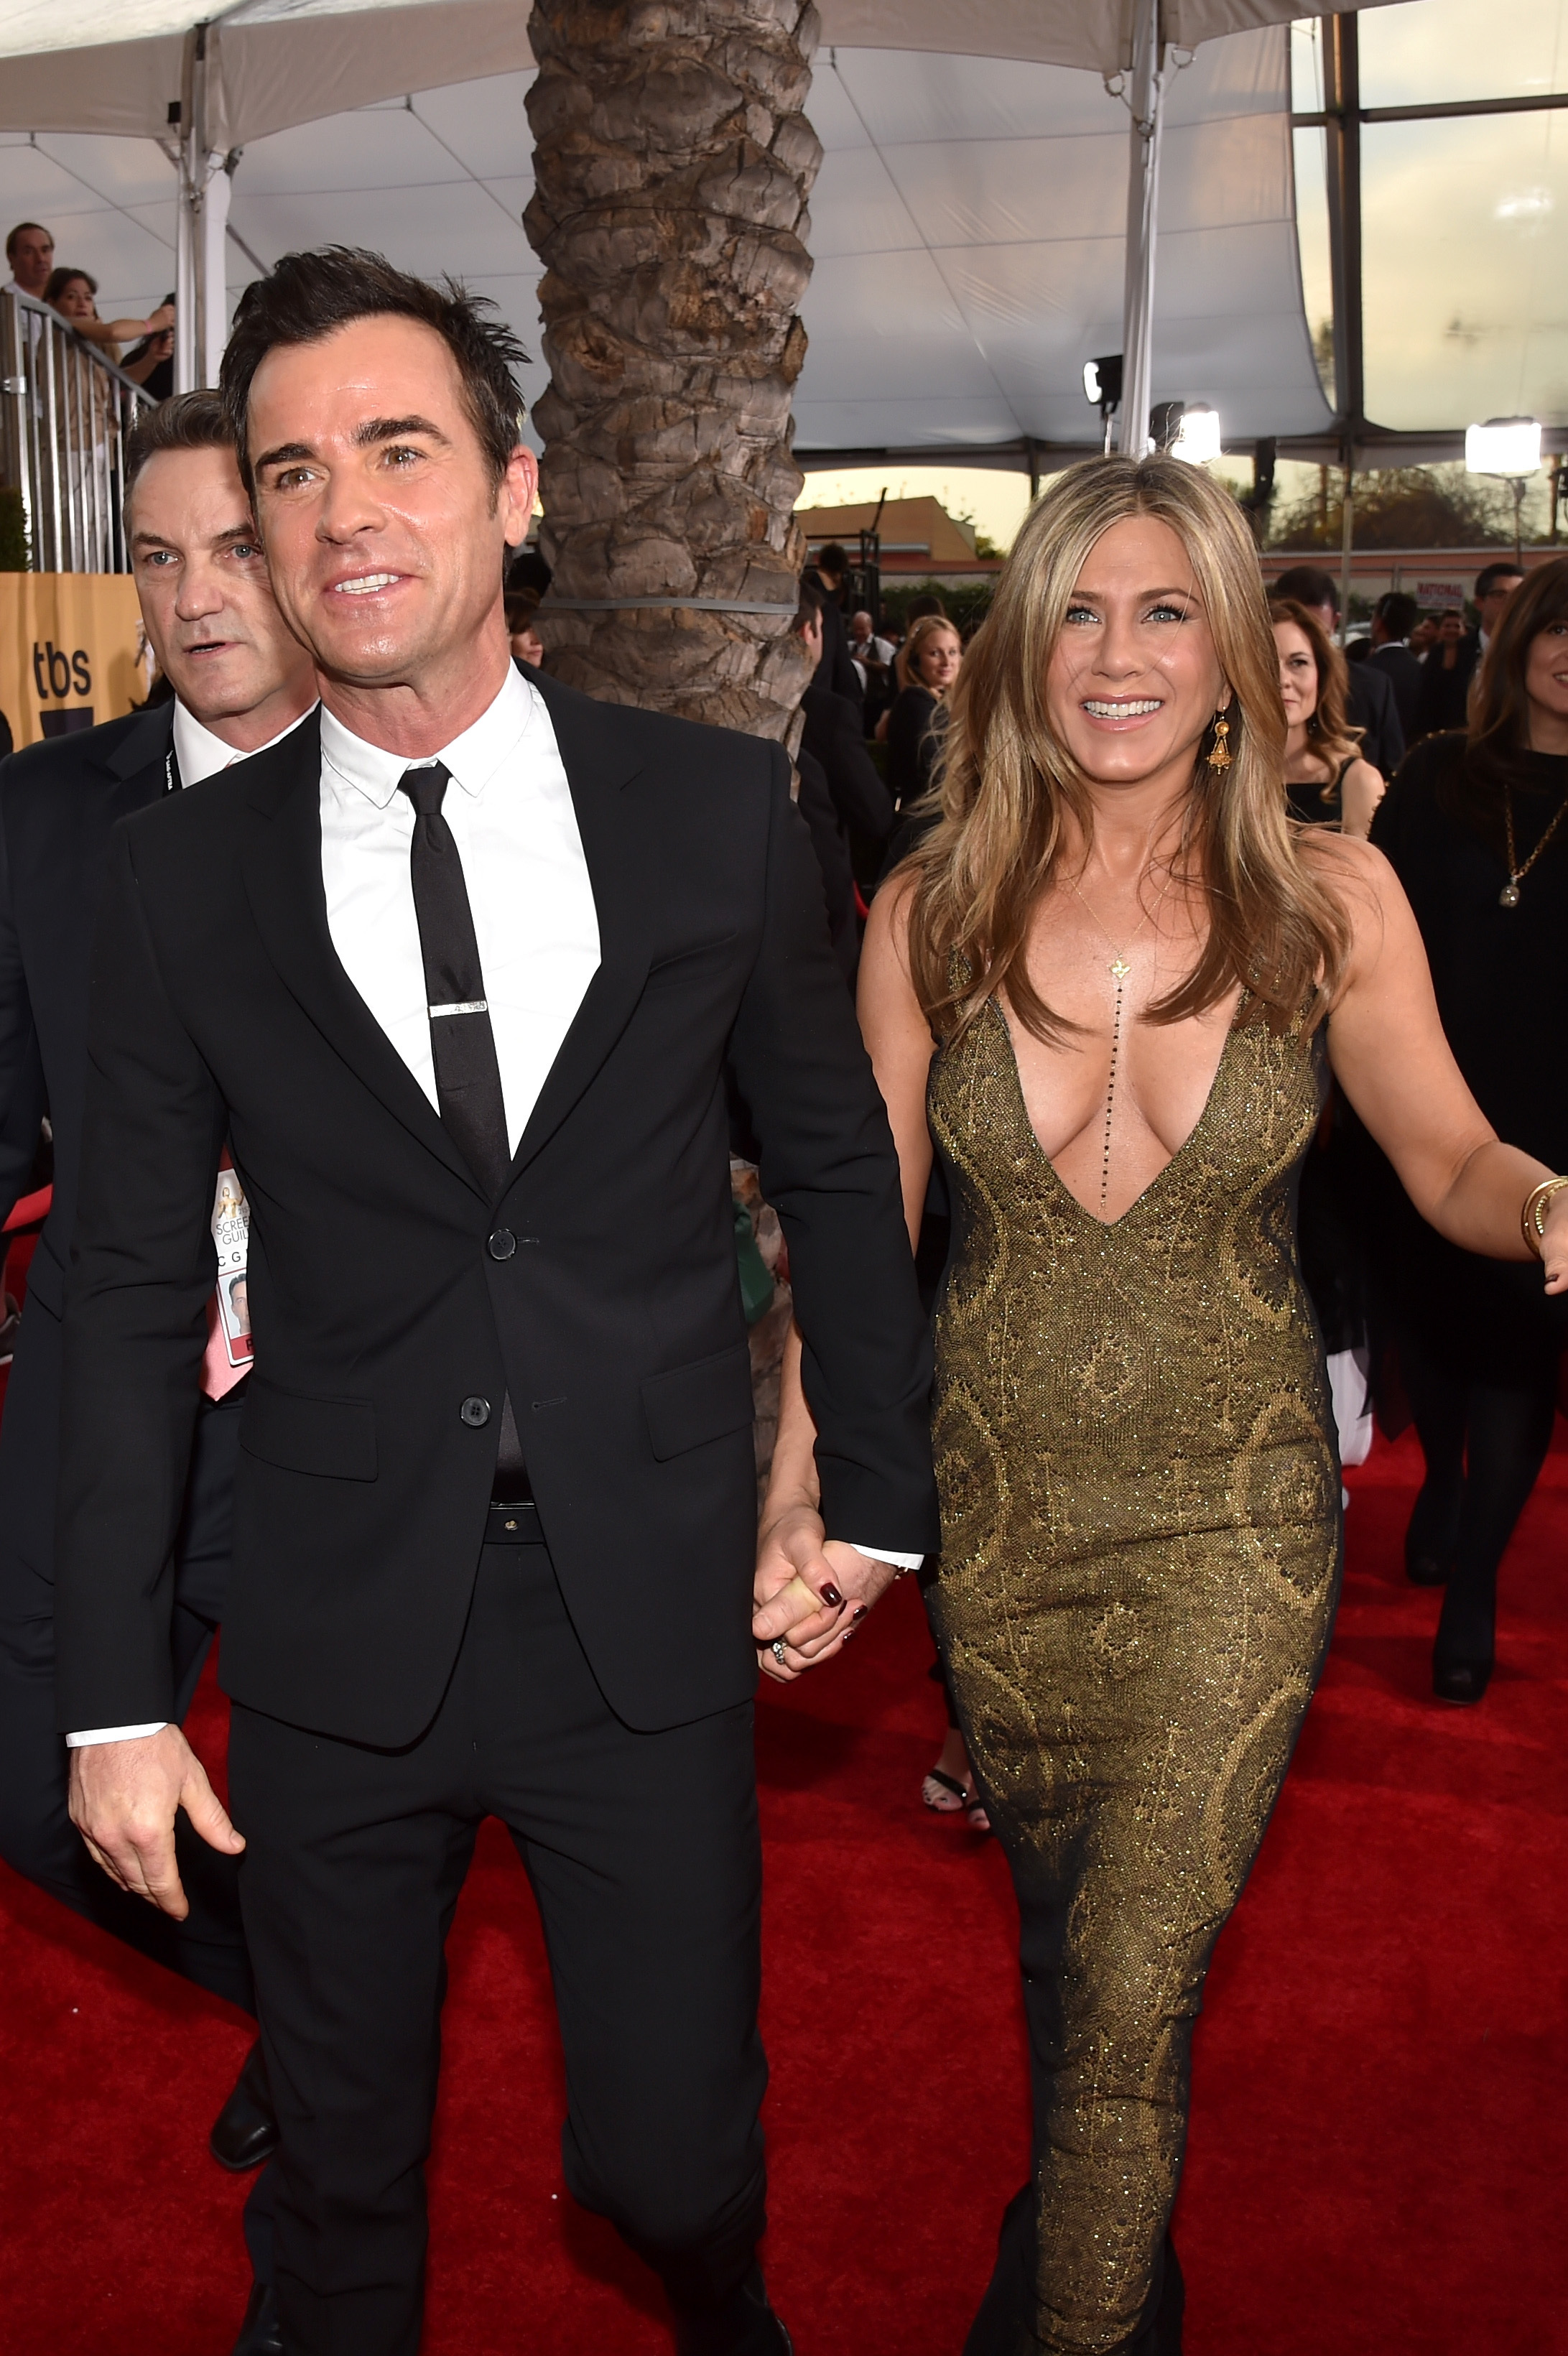 Justin Theroux and Jennifer Aniston attend TNT's 21st Annual Screen Actors Guild Awards at The Shrine Auditorium in Los Angeles on Jan. 25, 2015.